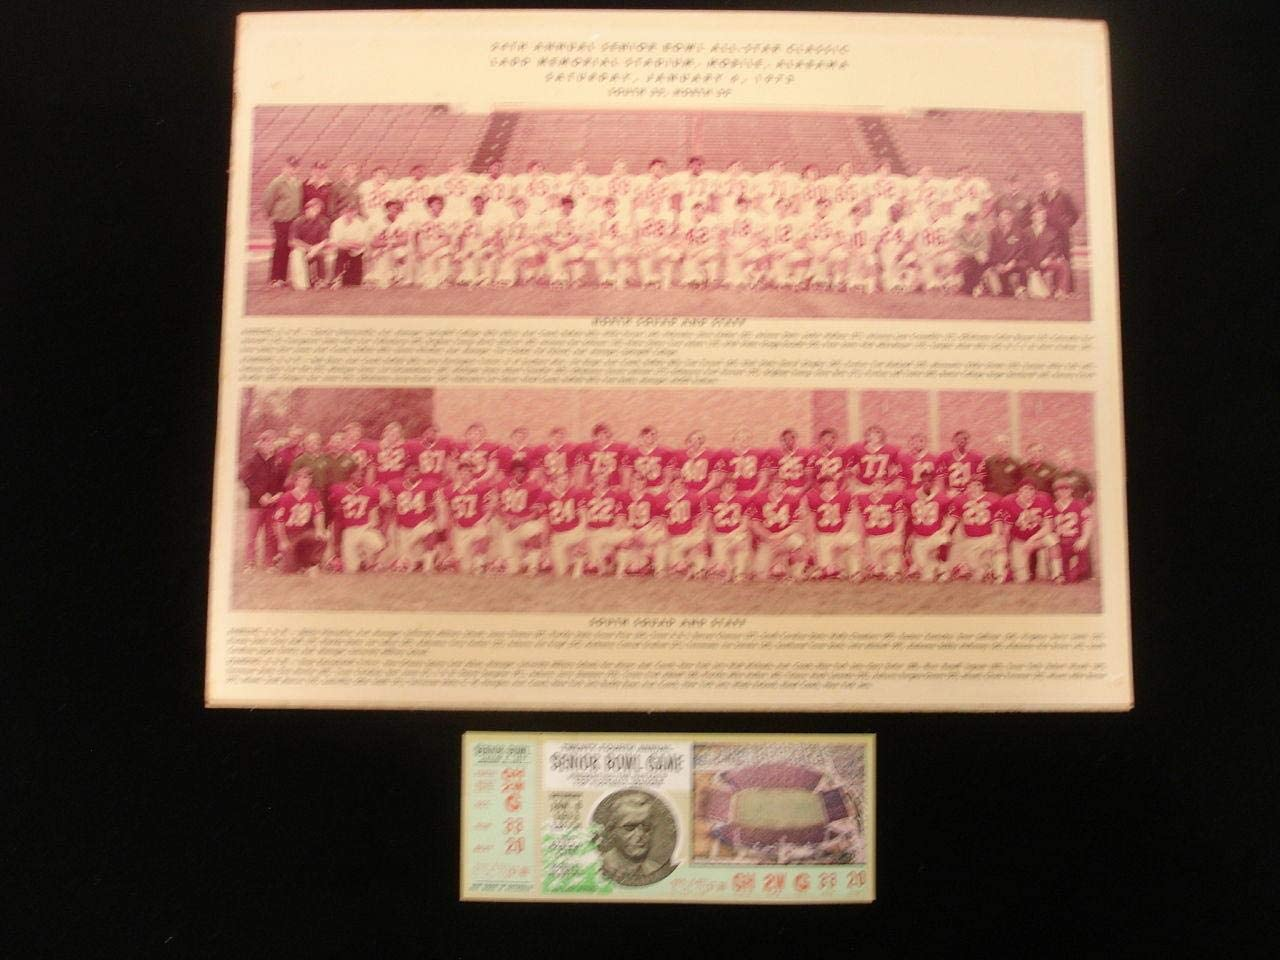 January 6, 1973 Senior Bowl Game Full Ticket & Team Photograph - NFL Unsigned Miscellaneous